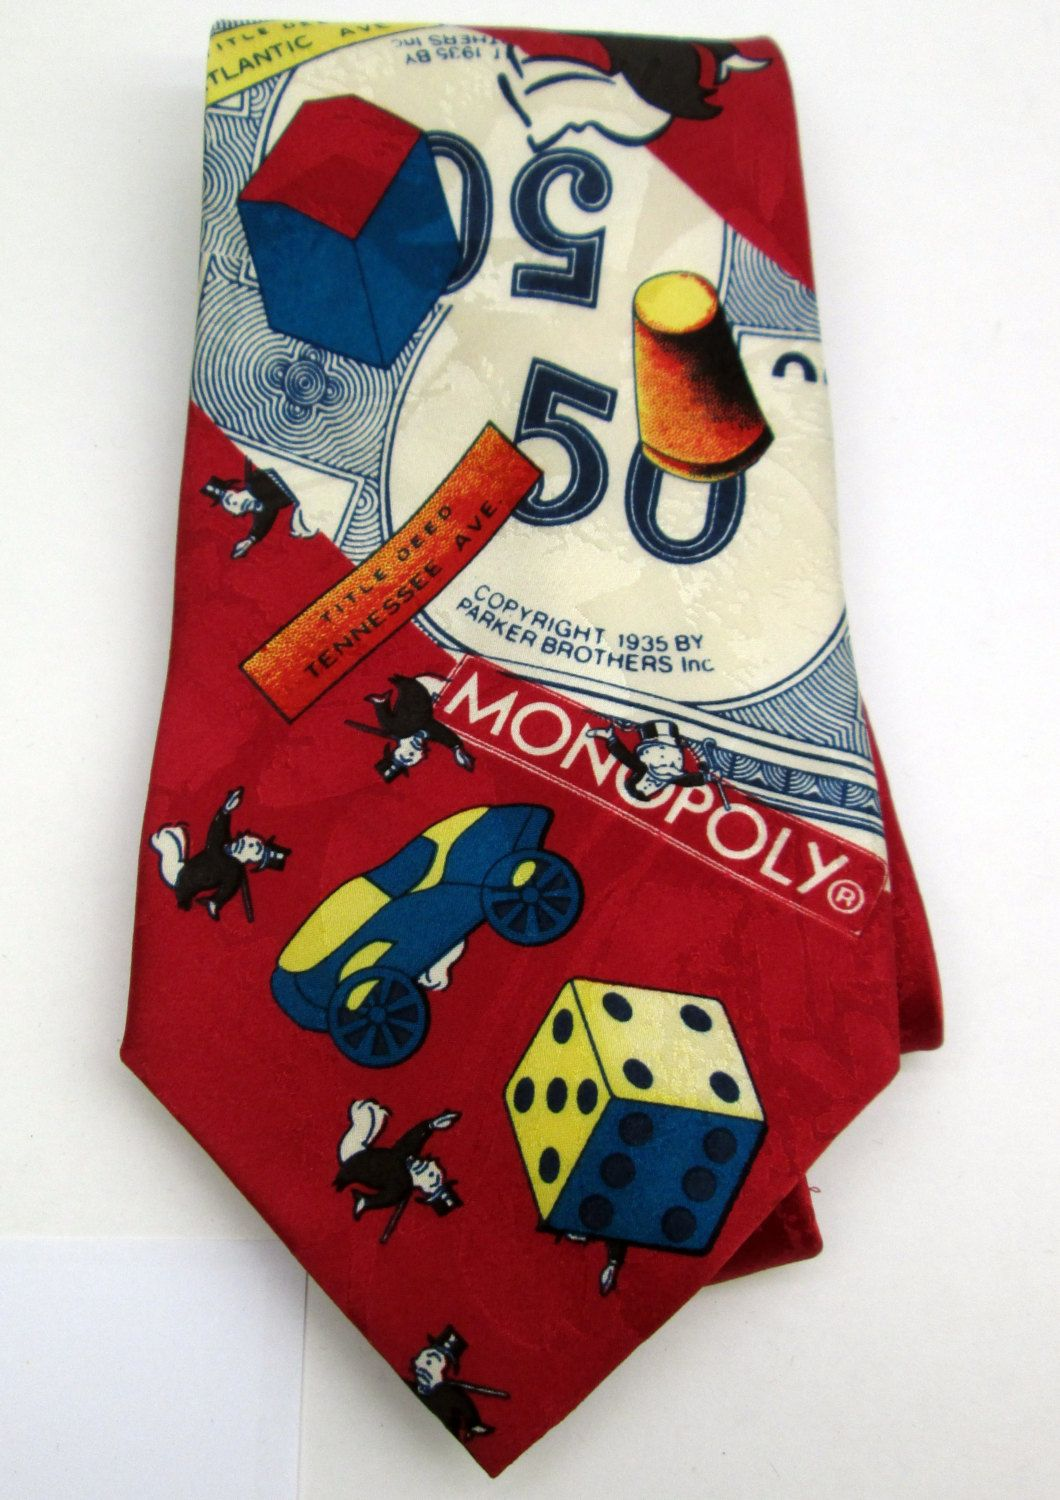 Official hasbro parker brothers game of monopoly silk tie by collectingly on etsy